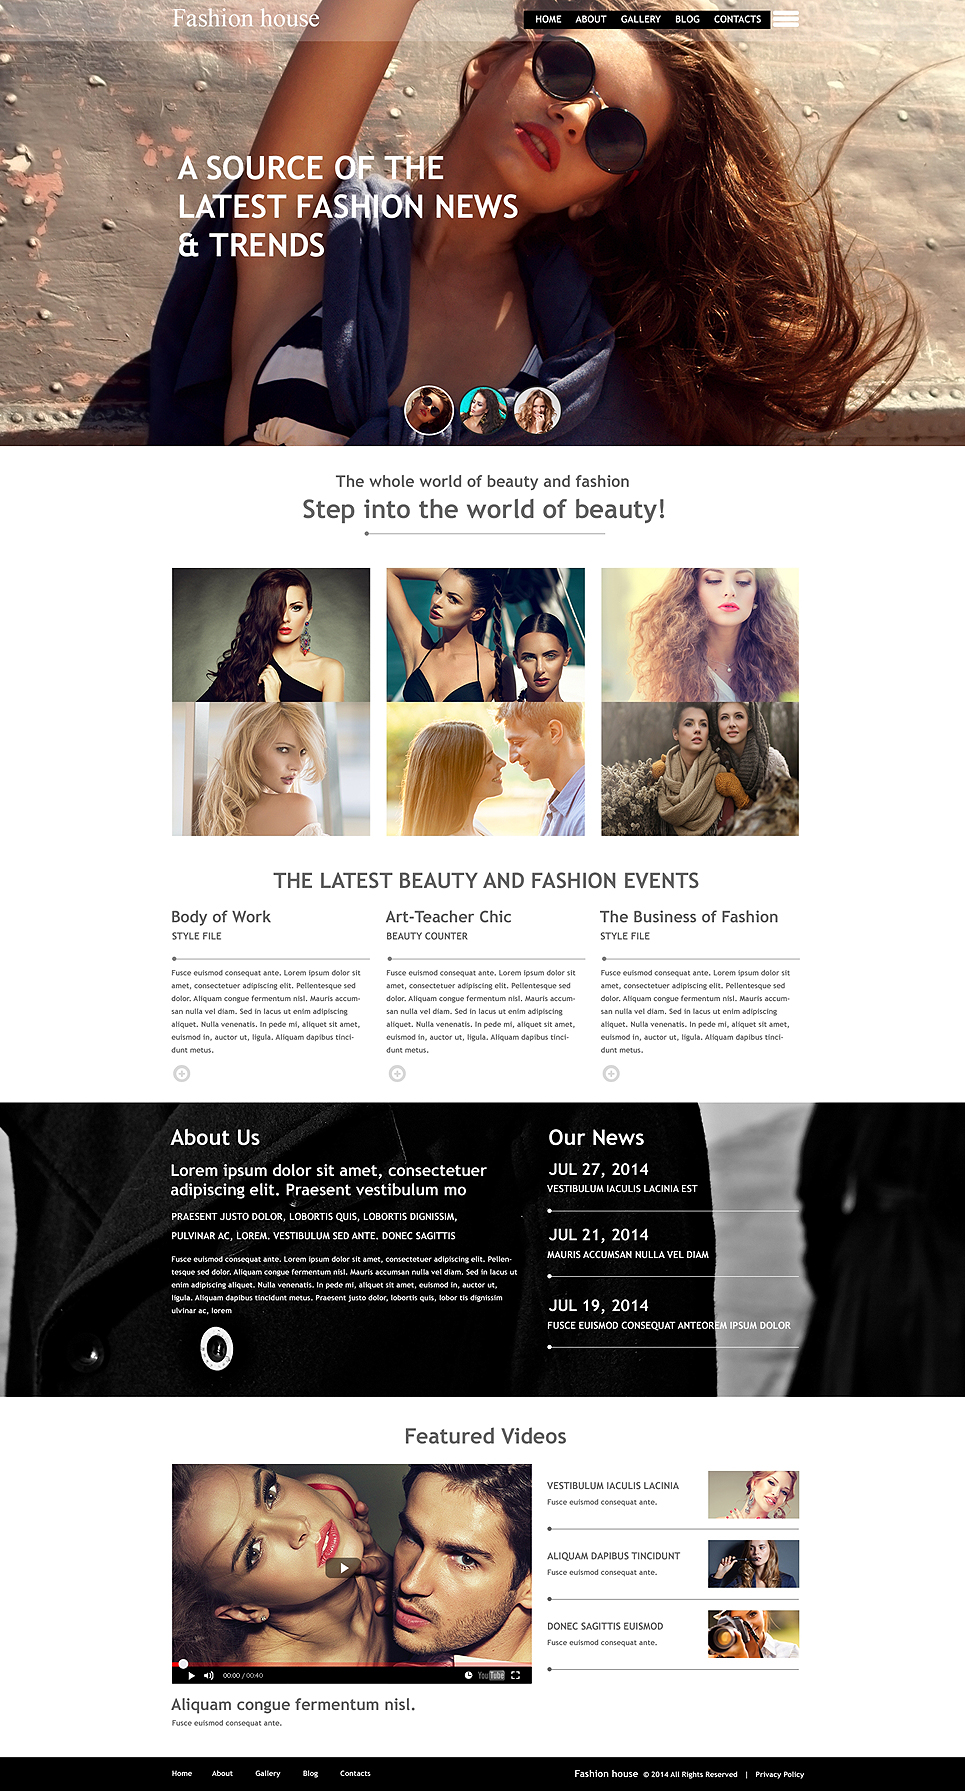 Muse Template – ALL TEMPLATES TEMPLATEMONSTER COM FREE OF CHARGE